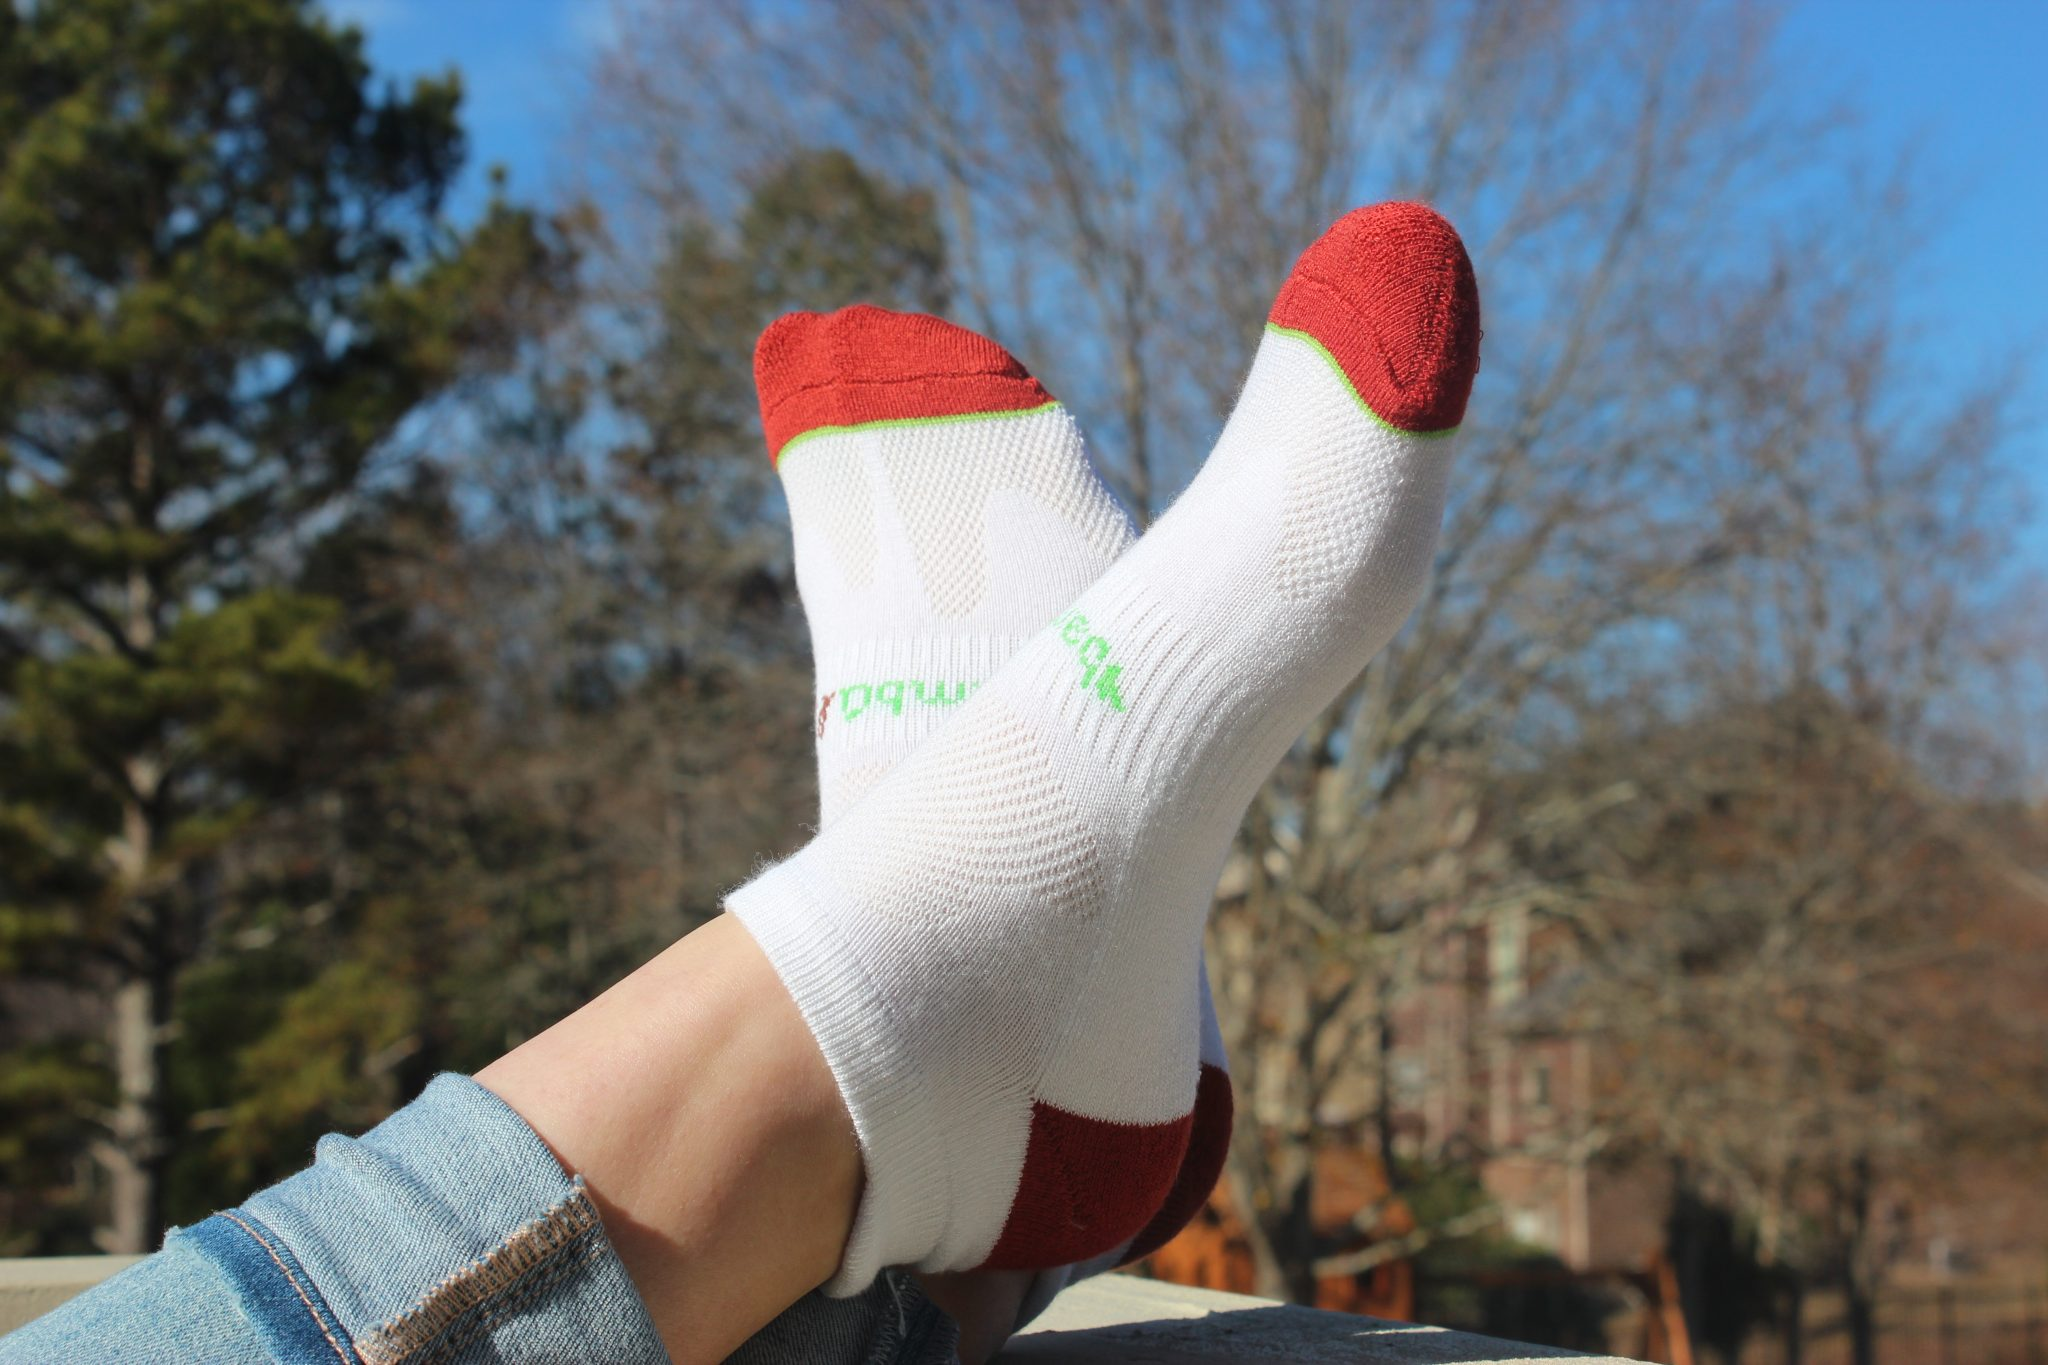 Socks are favored gifts to busy travelers and make great stocking stuffers.